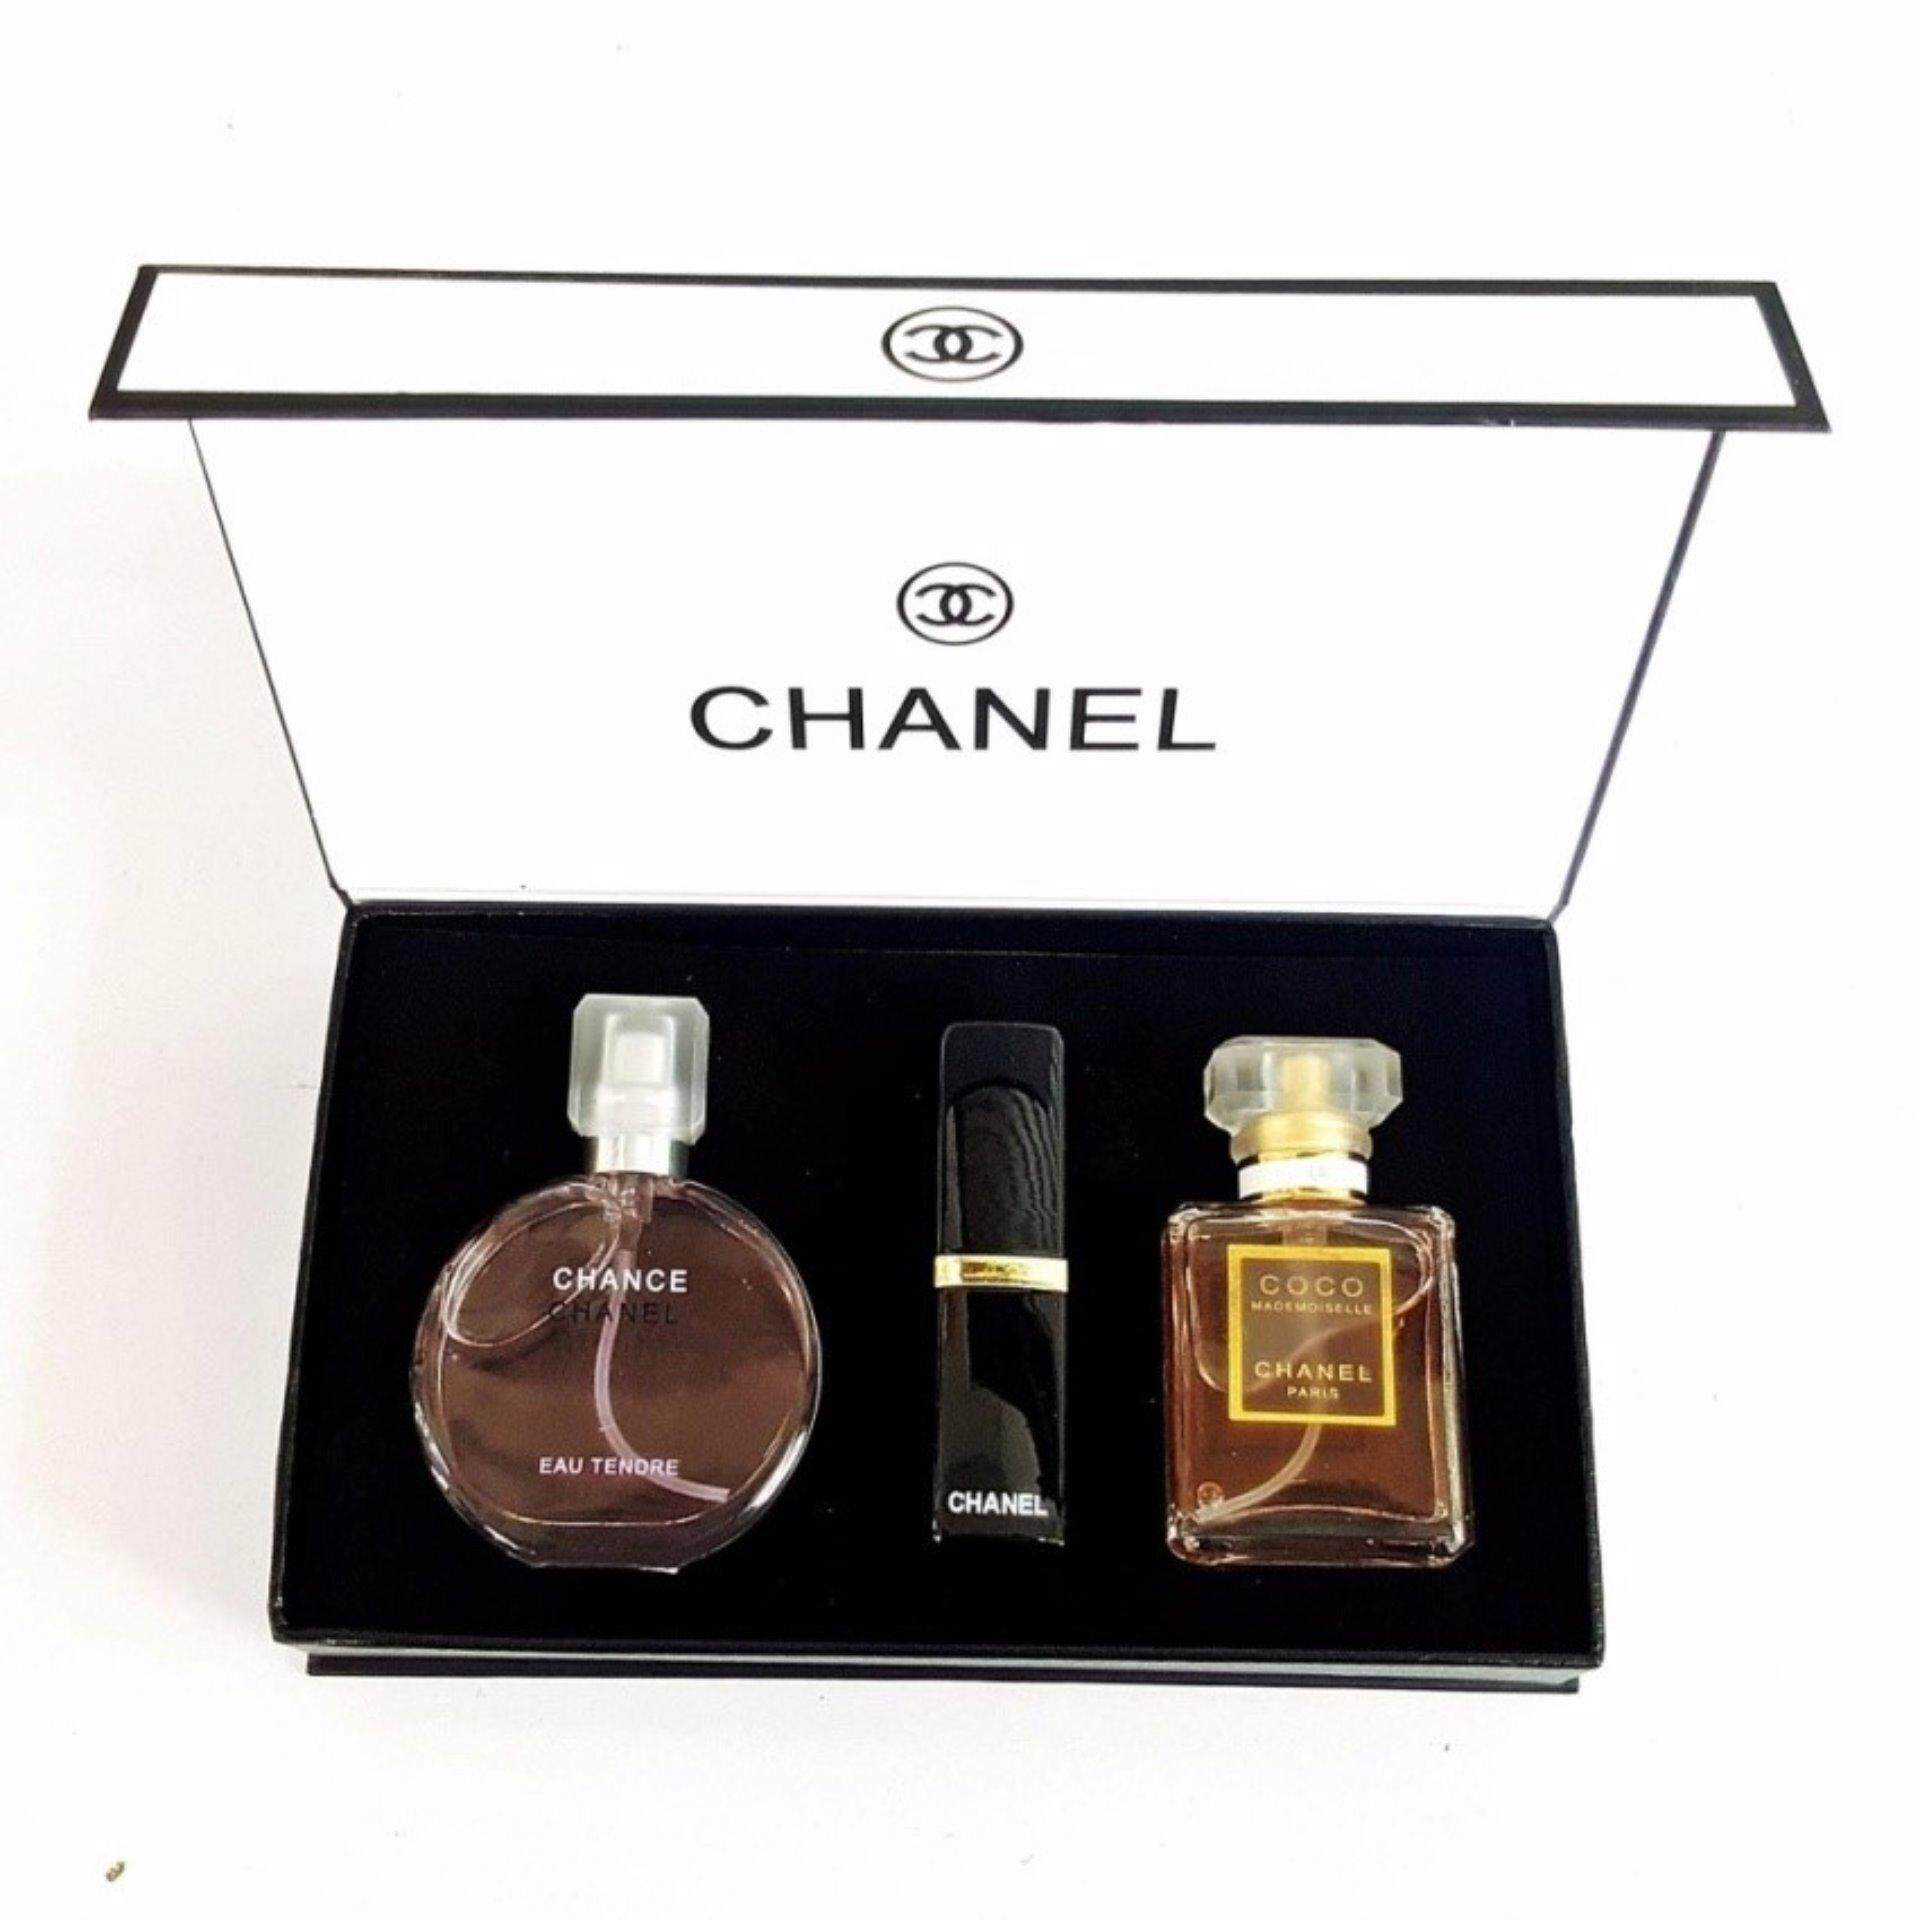 Chanel Gift Set 3 In 1 with Chance Chanel 15ml Perfume,Coco Madmosile 15ml Perfume And Lipstick